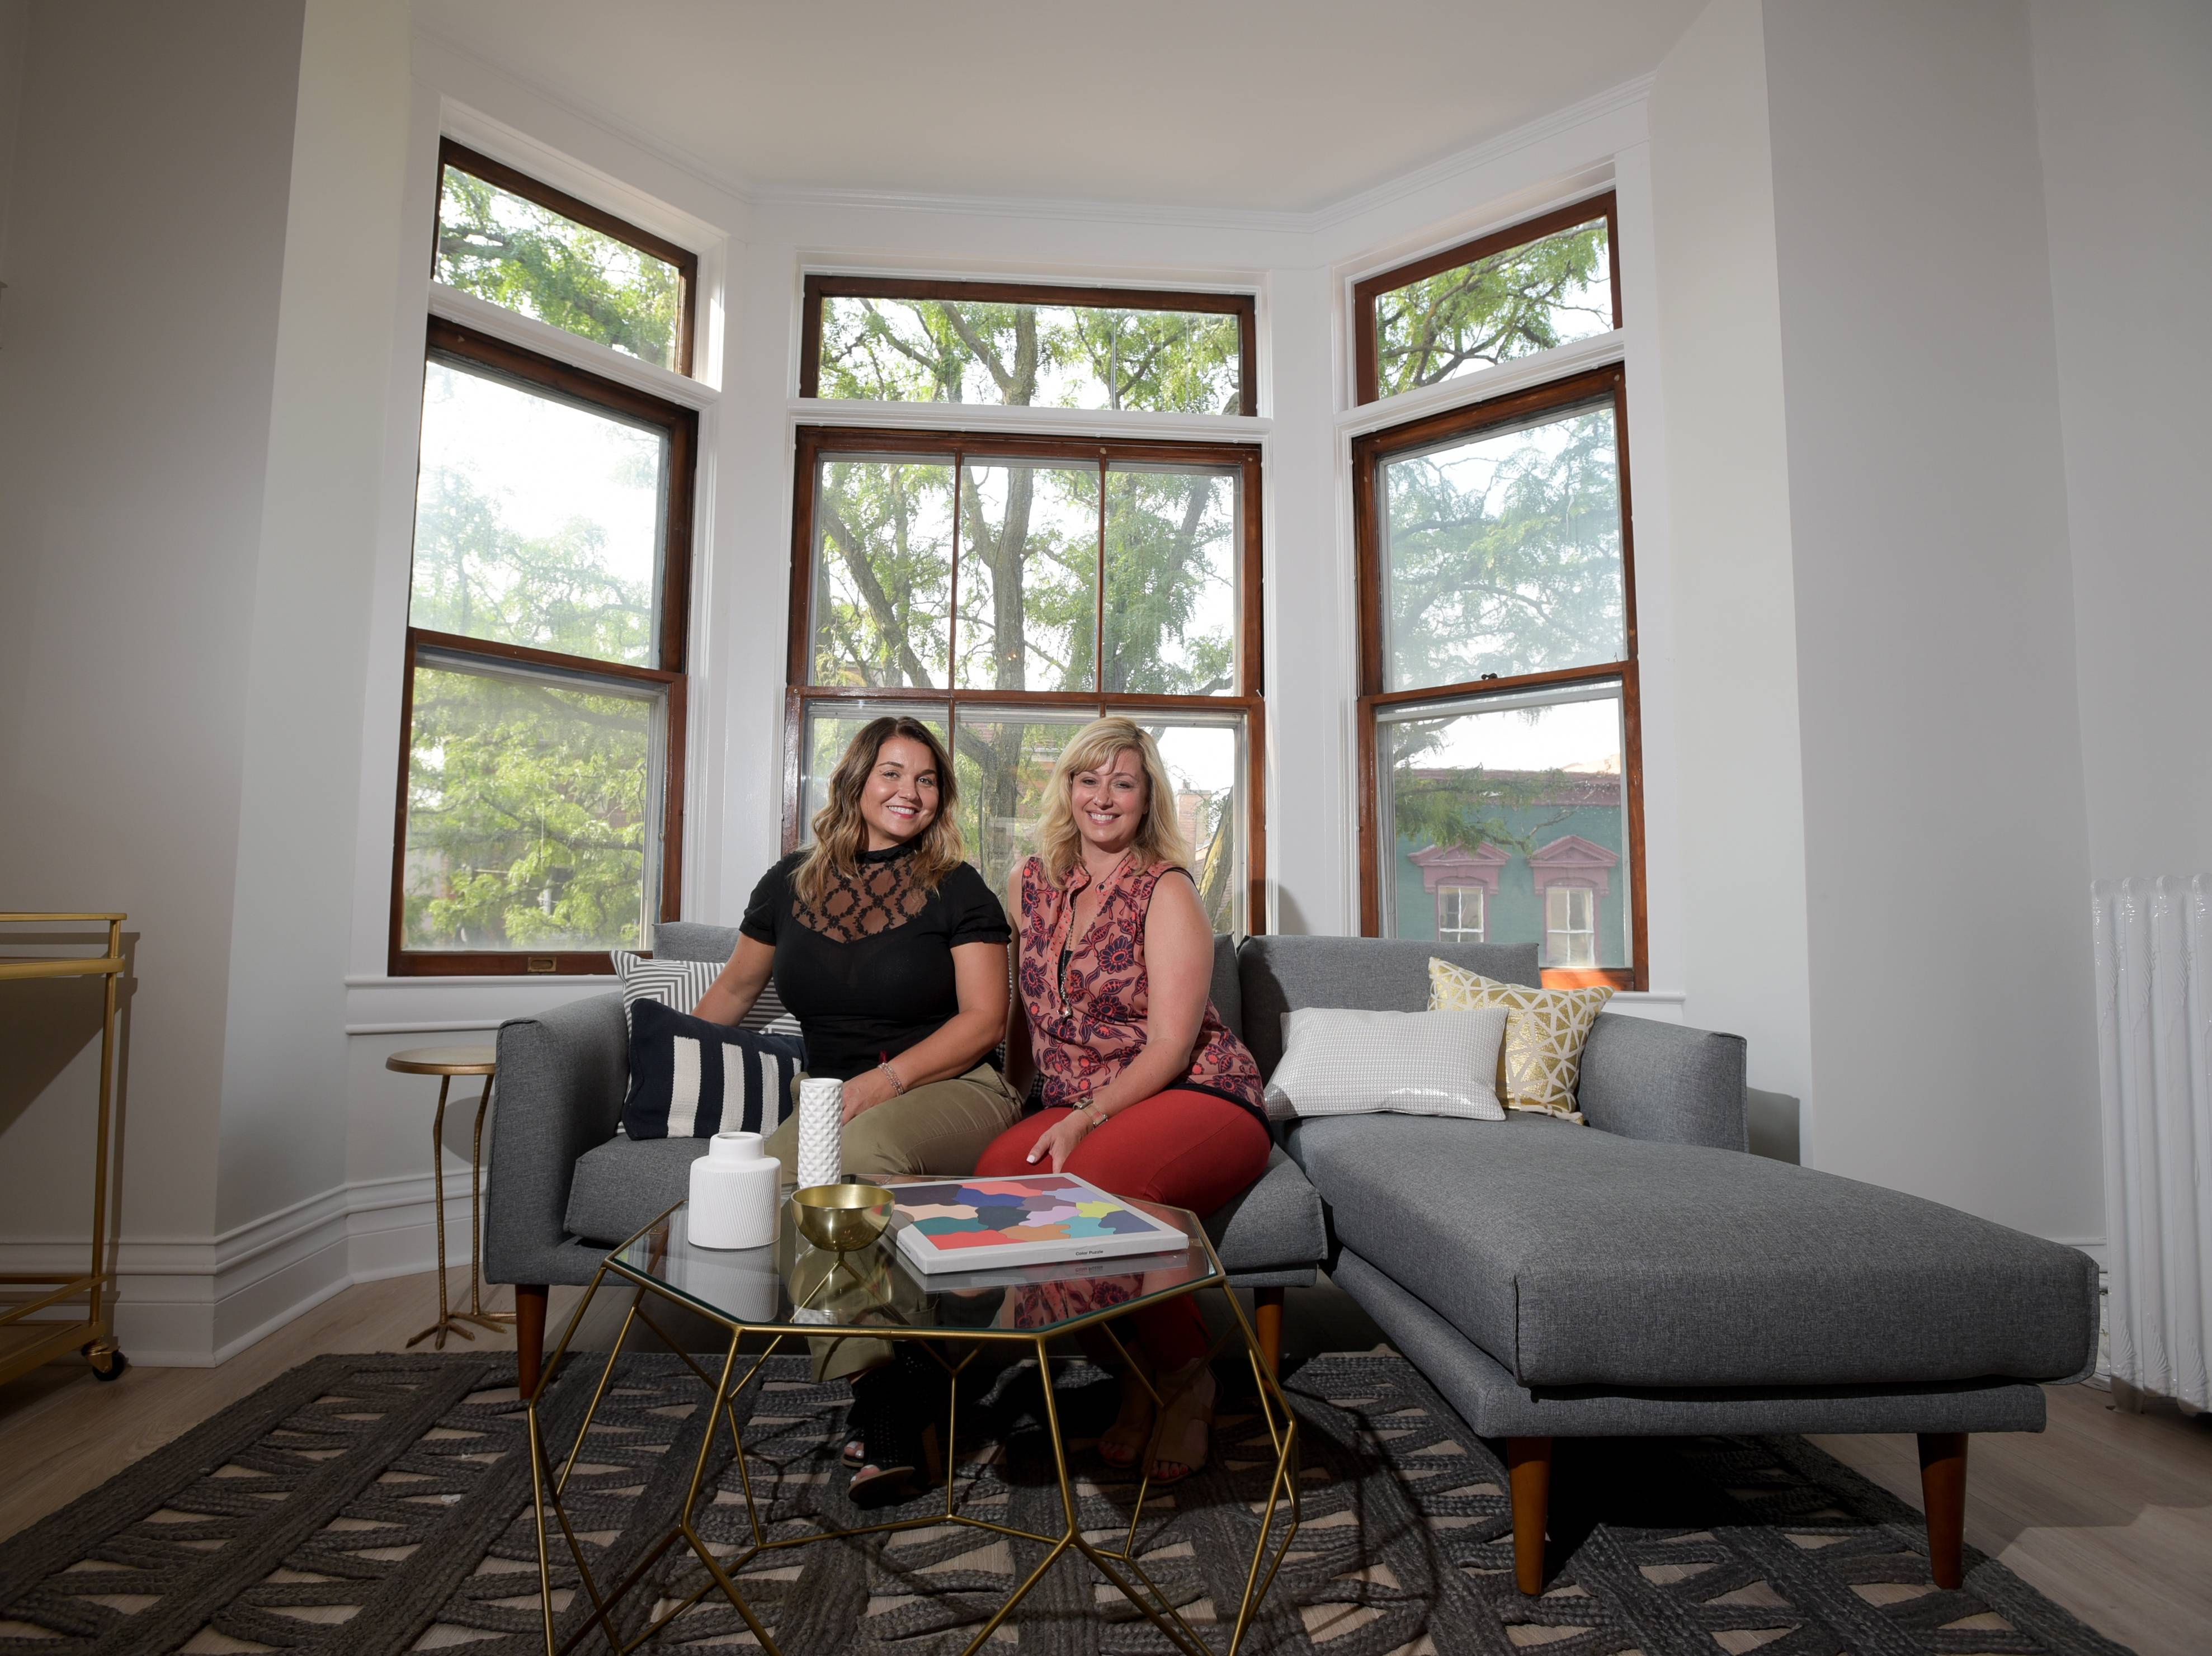 Stacy Amoo-Mensah and Heather DeMonte run their business, a branding boutique called Klique Creative, out of a co-working space they opened in April above Costello Jewelers in downtown Naperville.